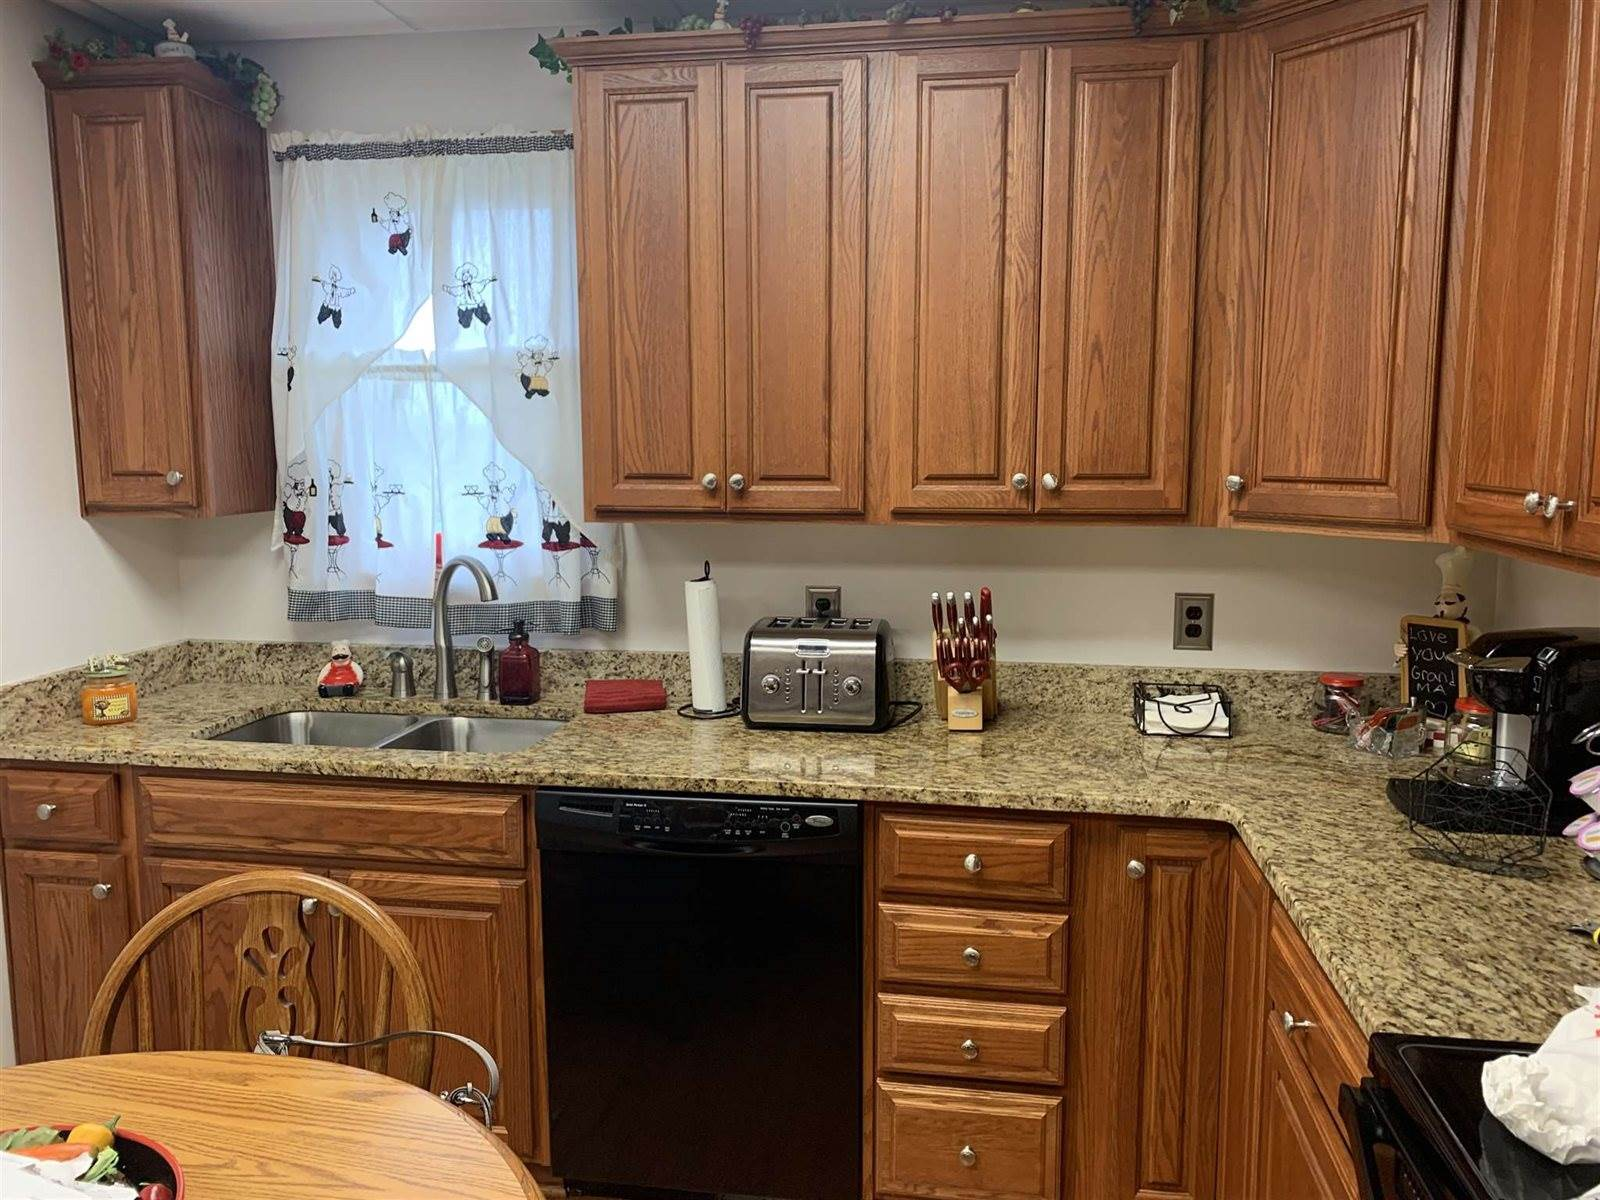 6275 S 1050 E, Upland, IN 46989